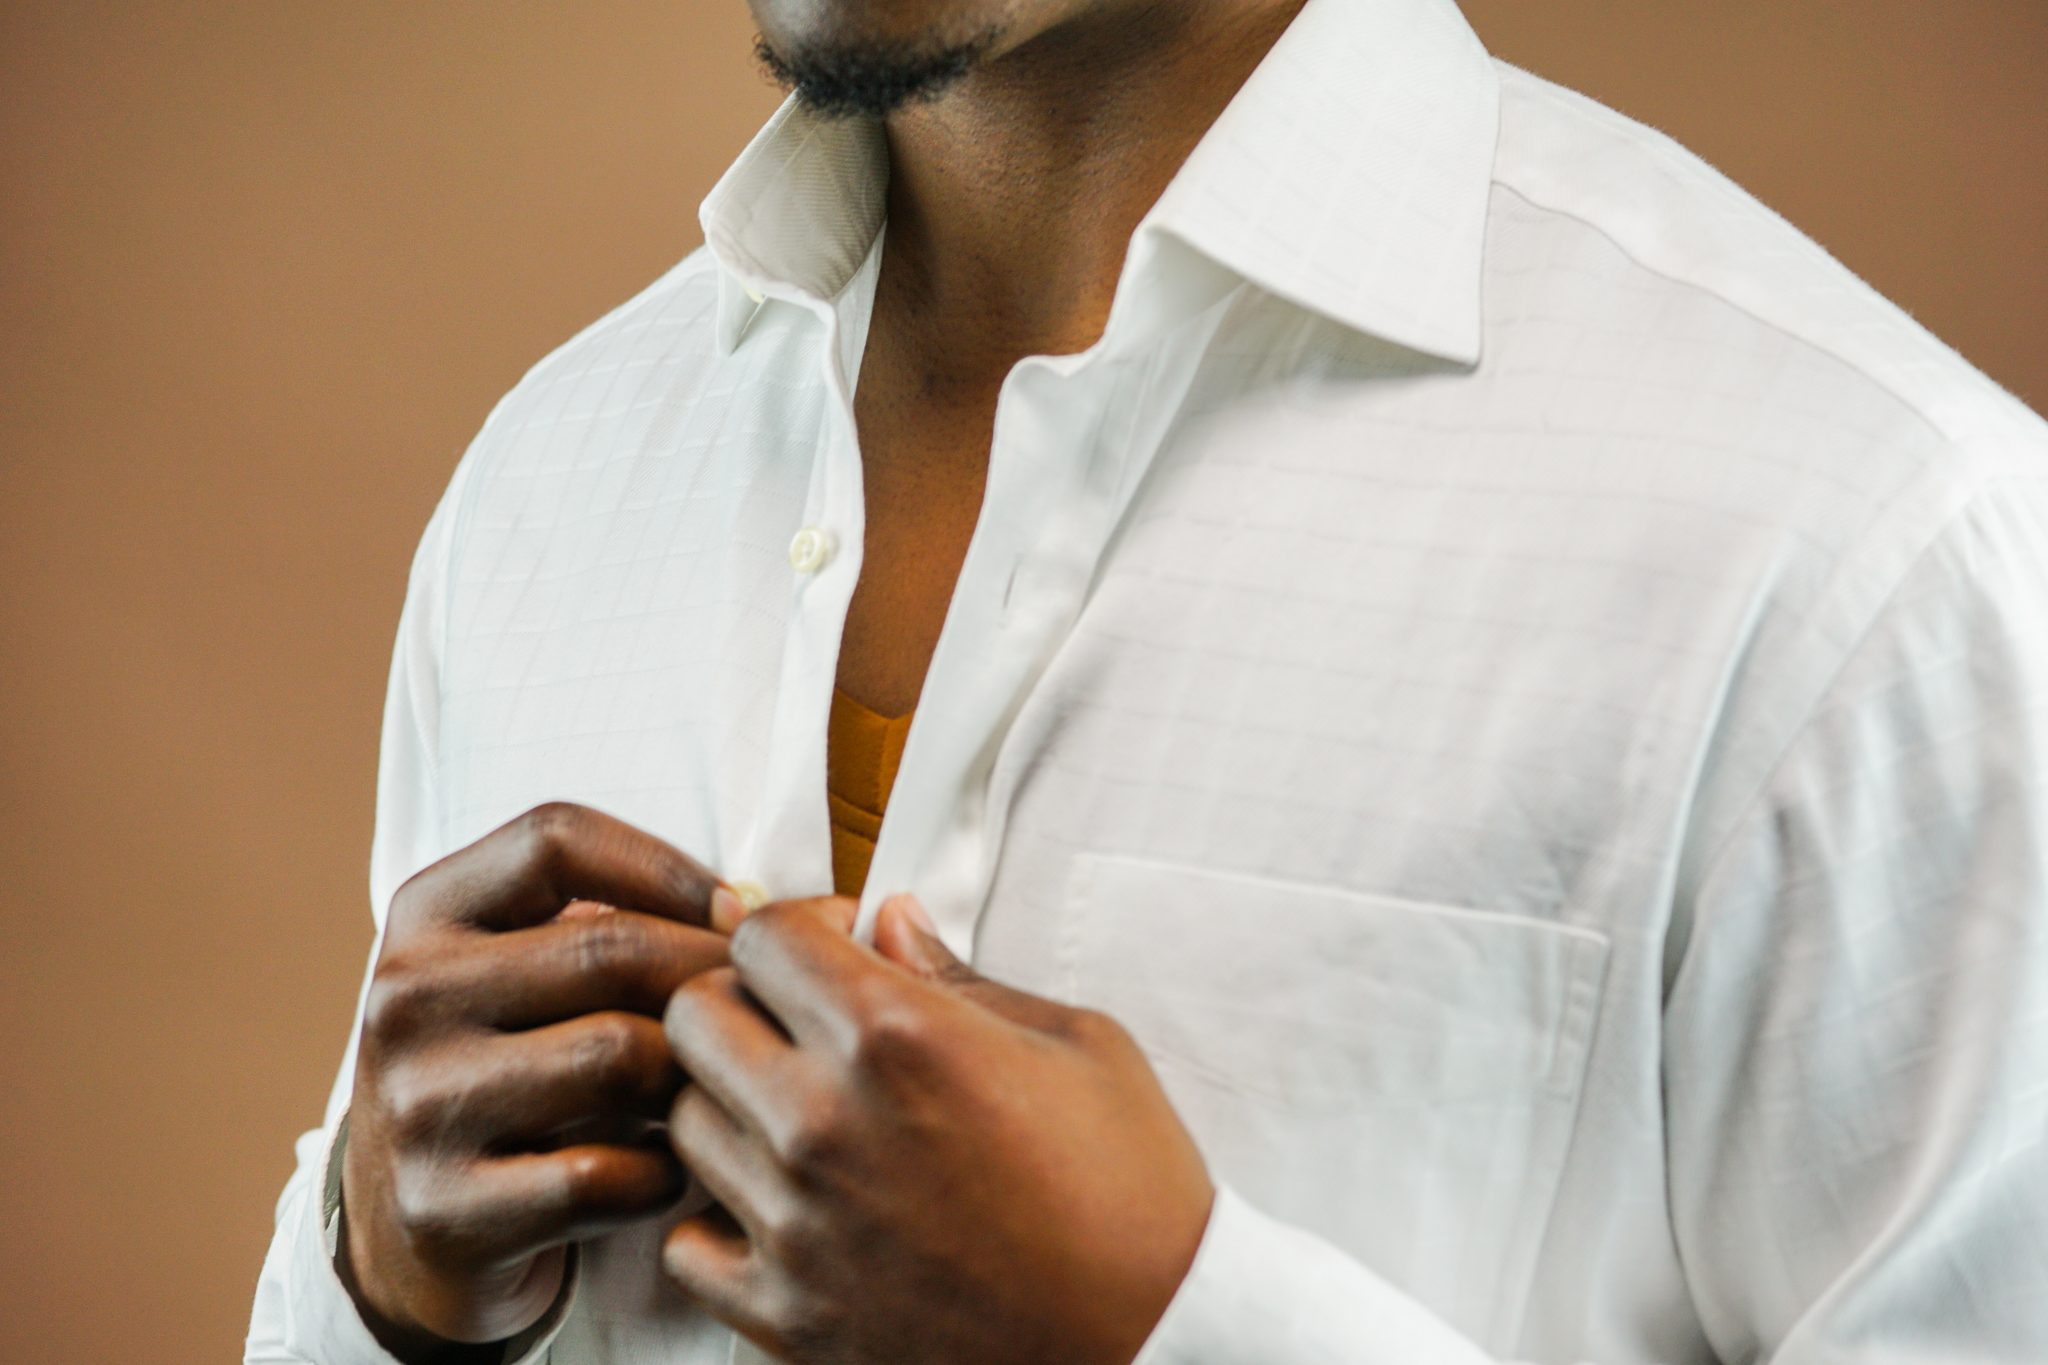 dapper-advisor-black-man-wearing-nvsbl-undershirt-dark-skin-tone-review-2